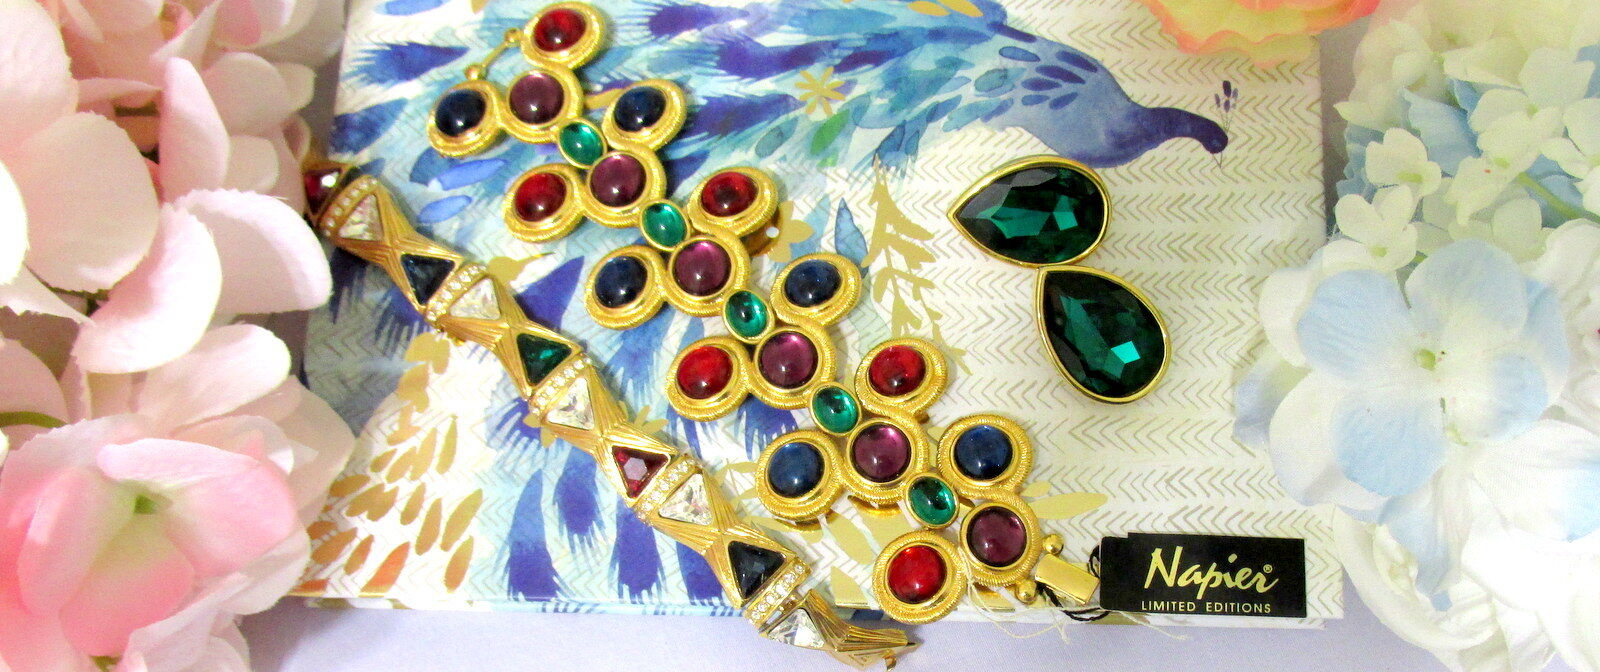 Eden's Vintage Jewel Temptations